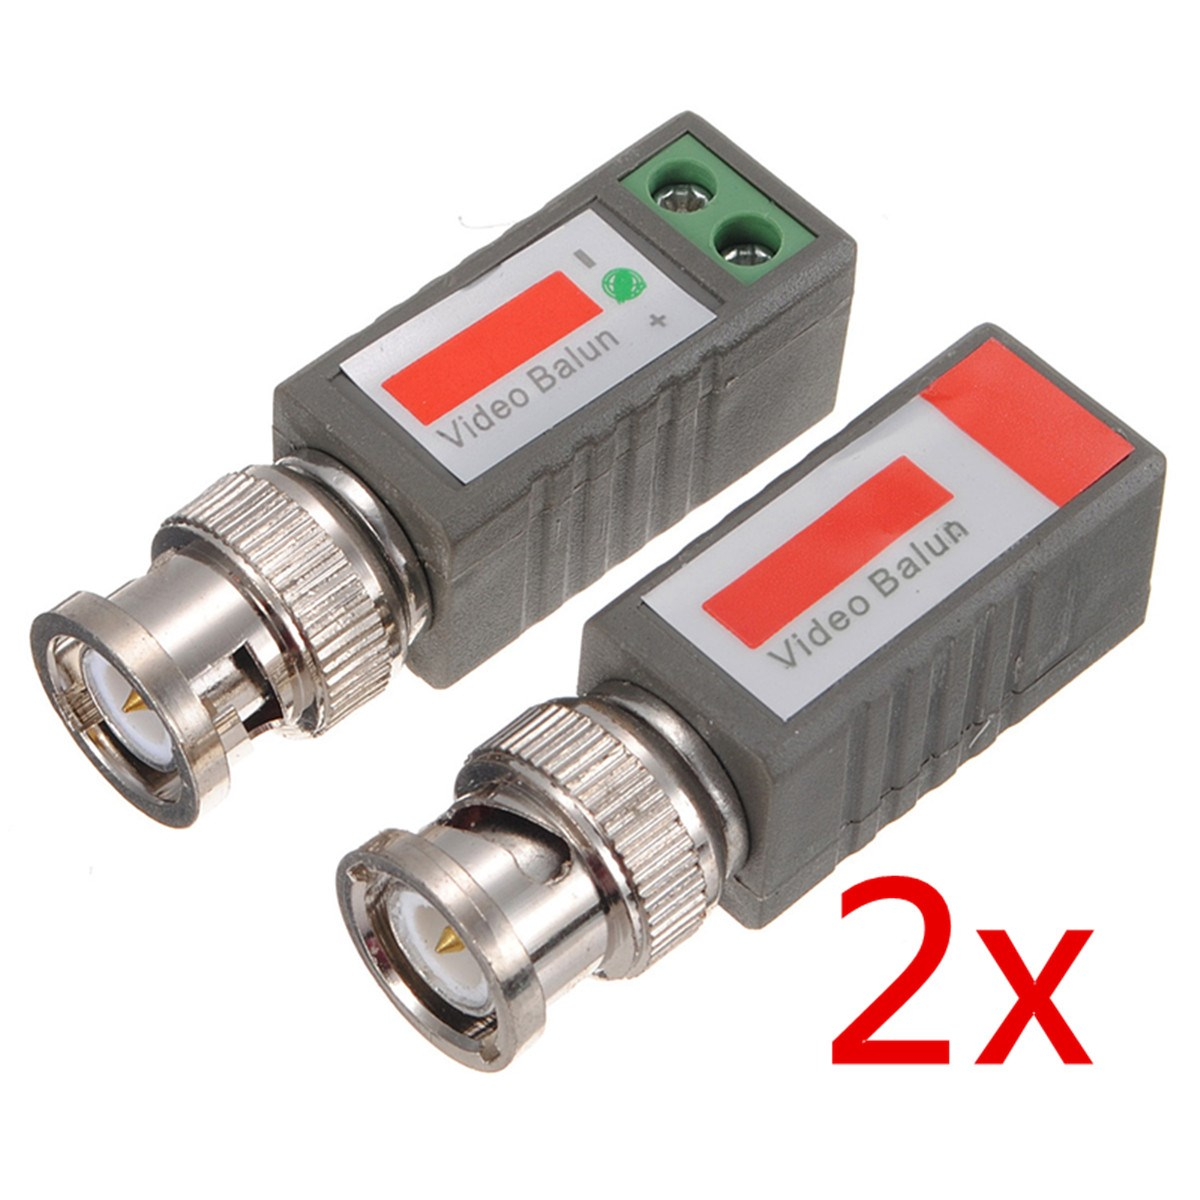 2pcs Camera CCTV Coax CAT5 To BNC Male Video Passive Balun UTP Transceiver Connector Passive Transceivers 2000ft Distance(China (Mainland))